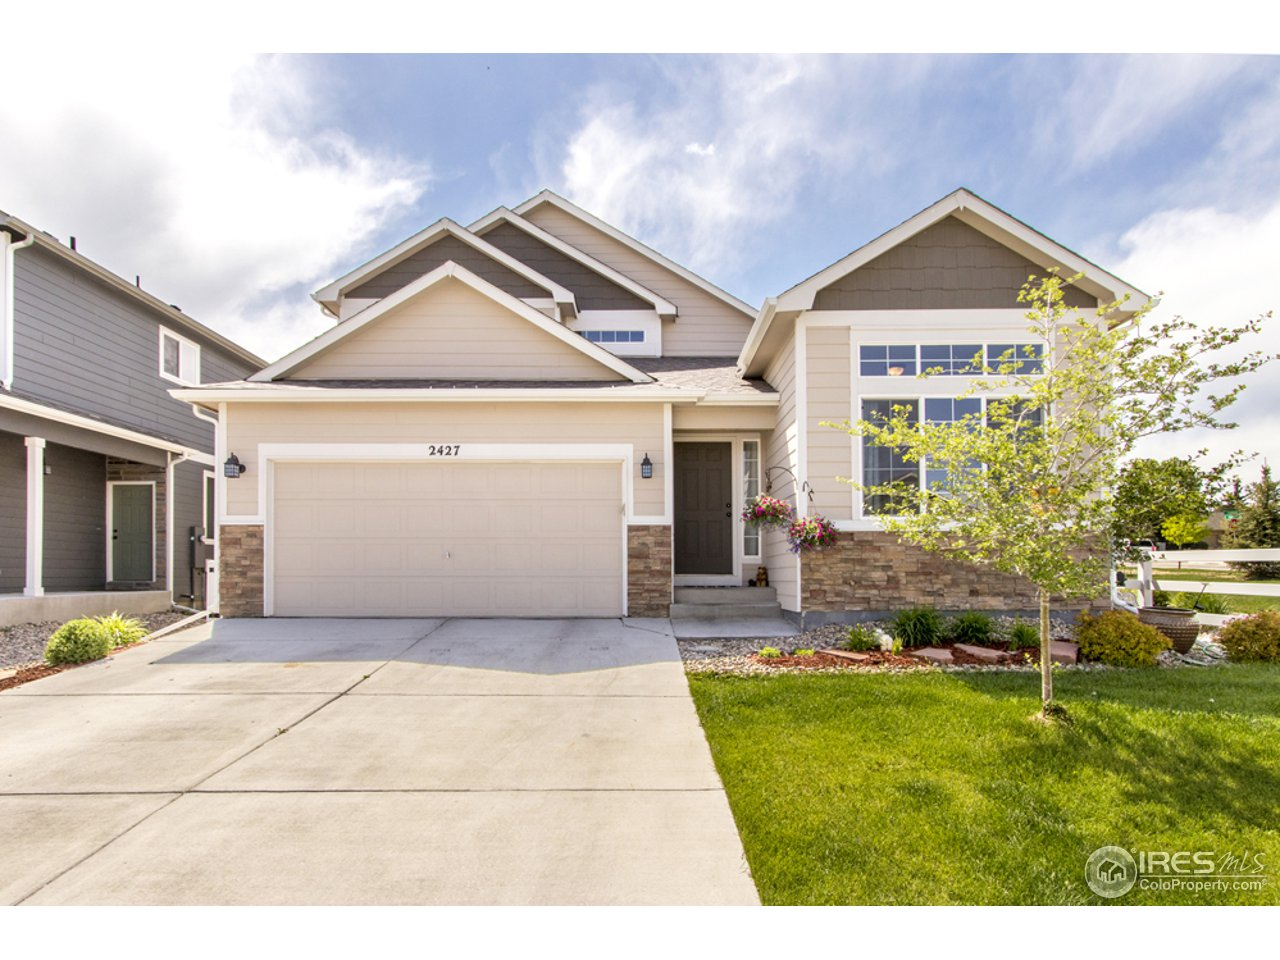 2427 Marshfield Ln, Fort Collins CO 80524